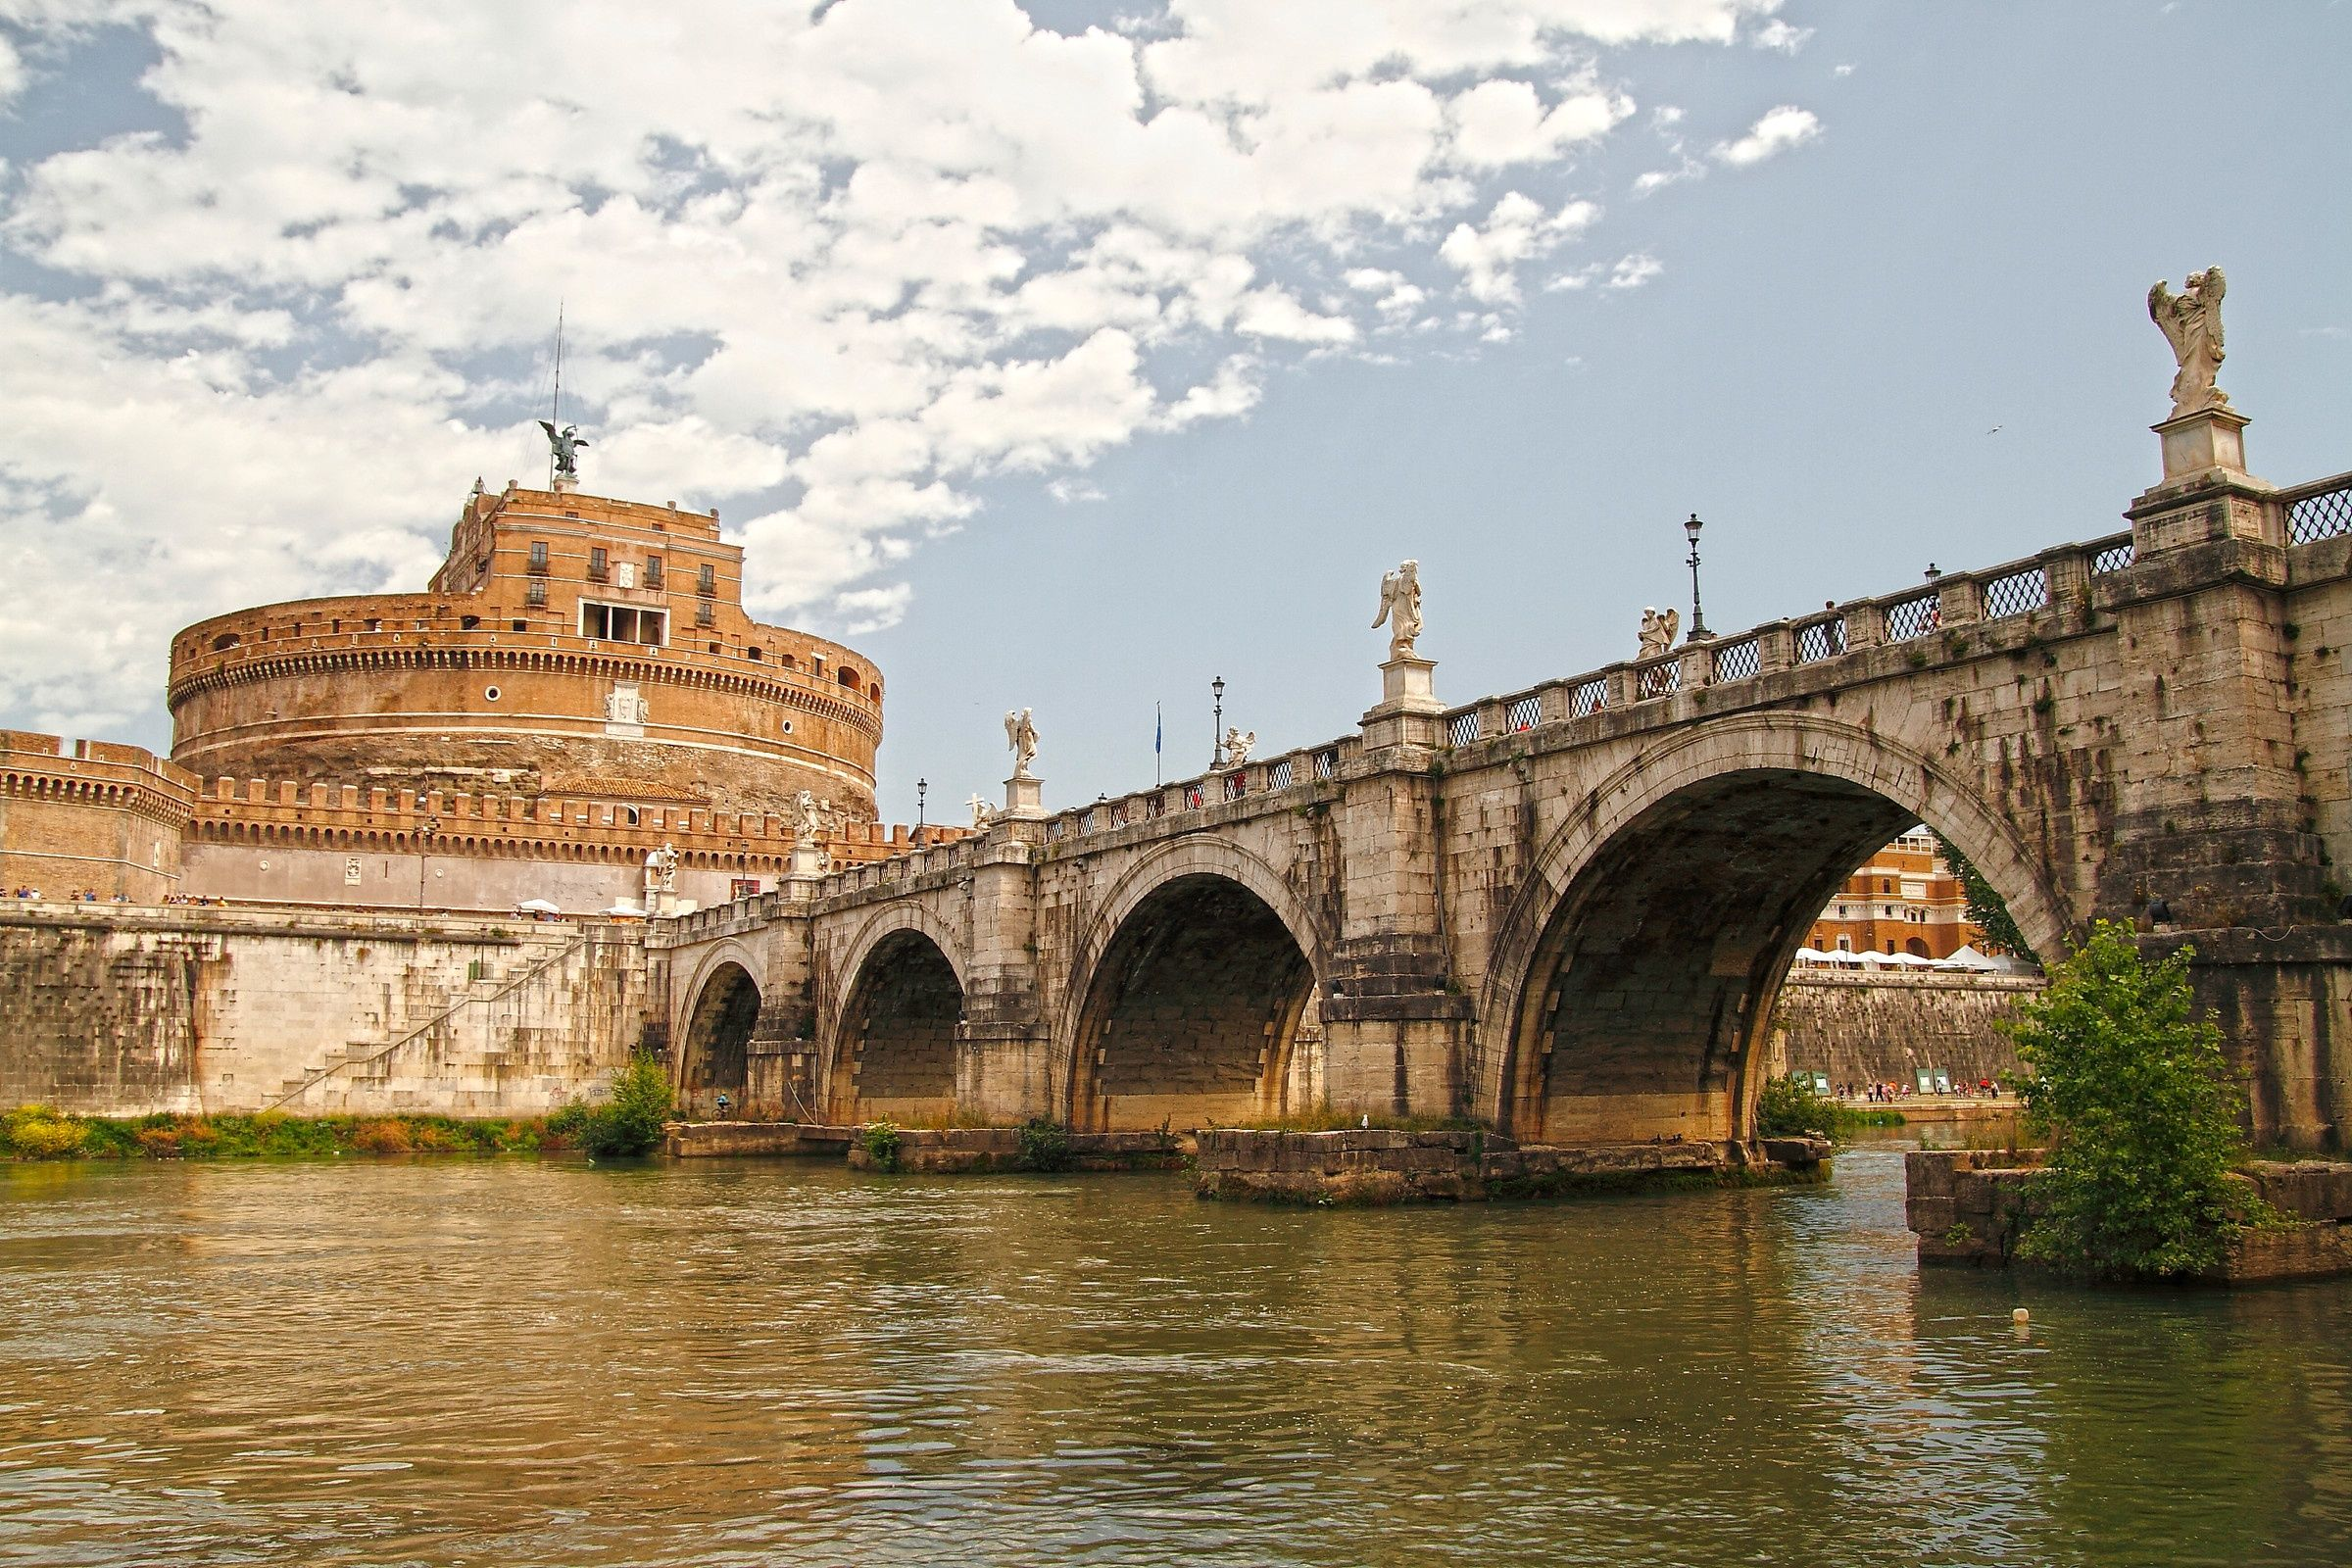 SIGHTS. Castel Sant'angelo. Standing between the Tiber and